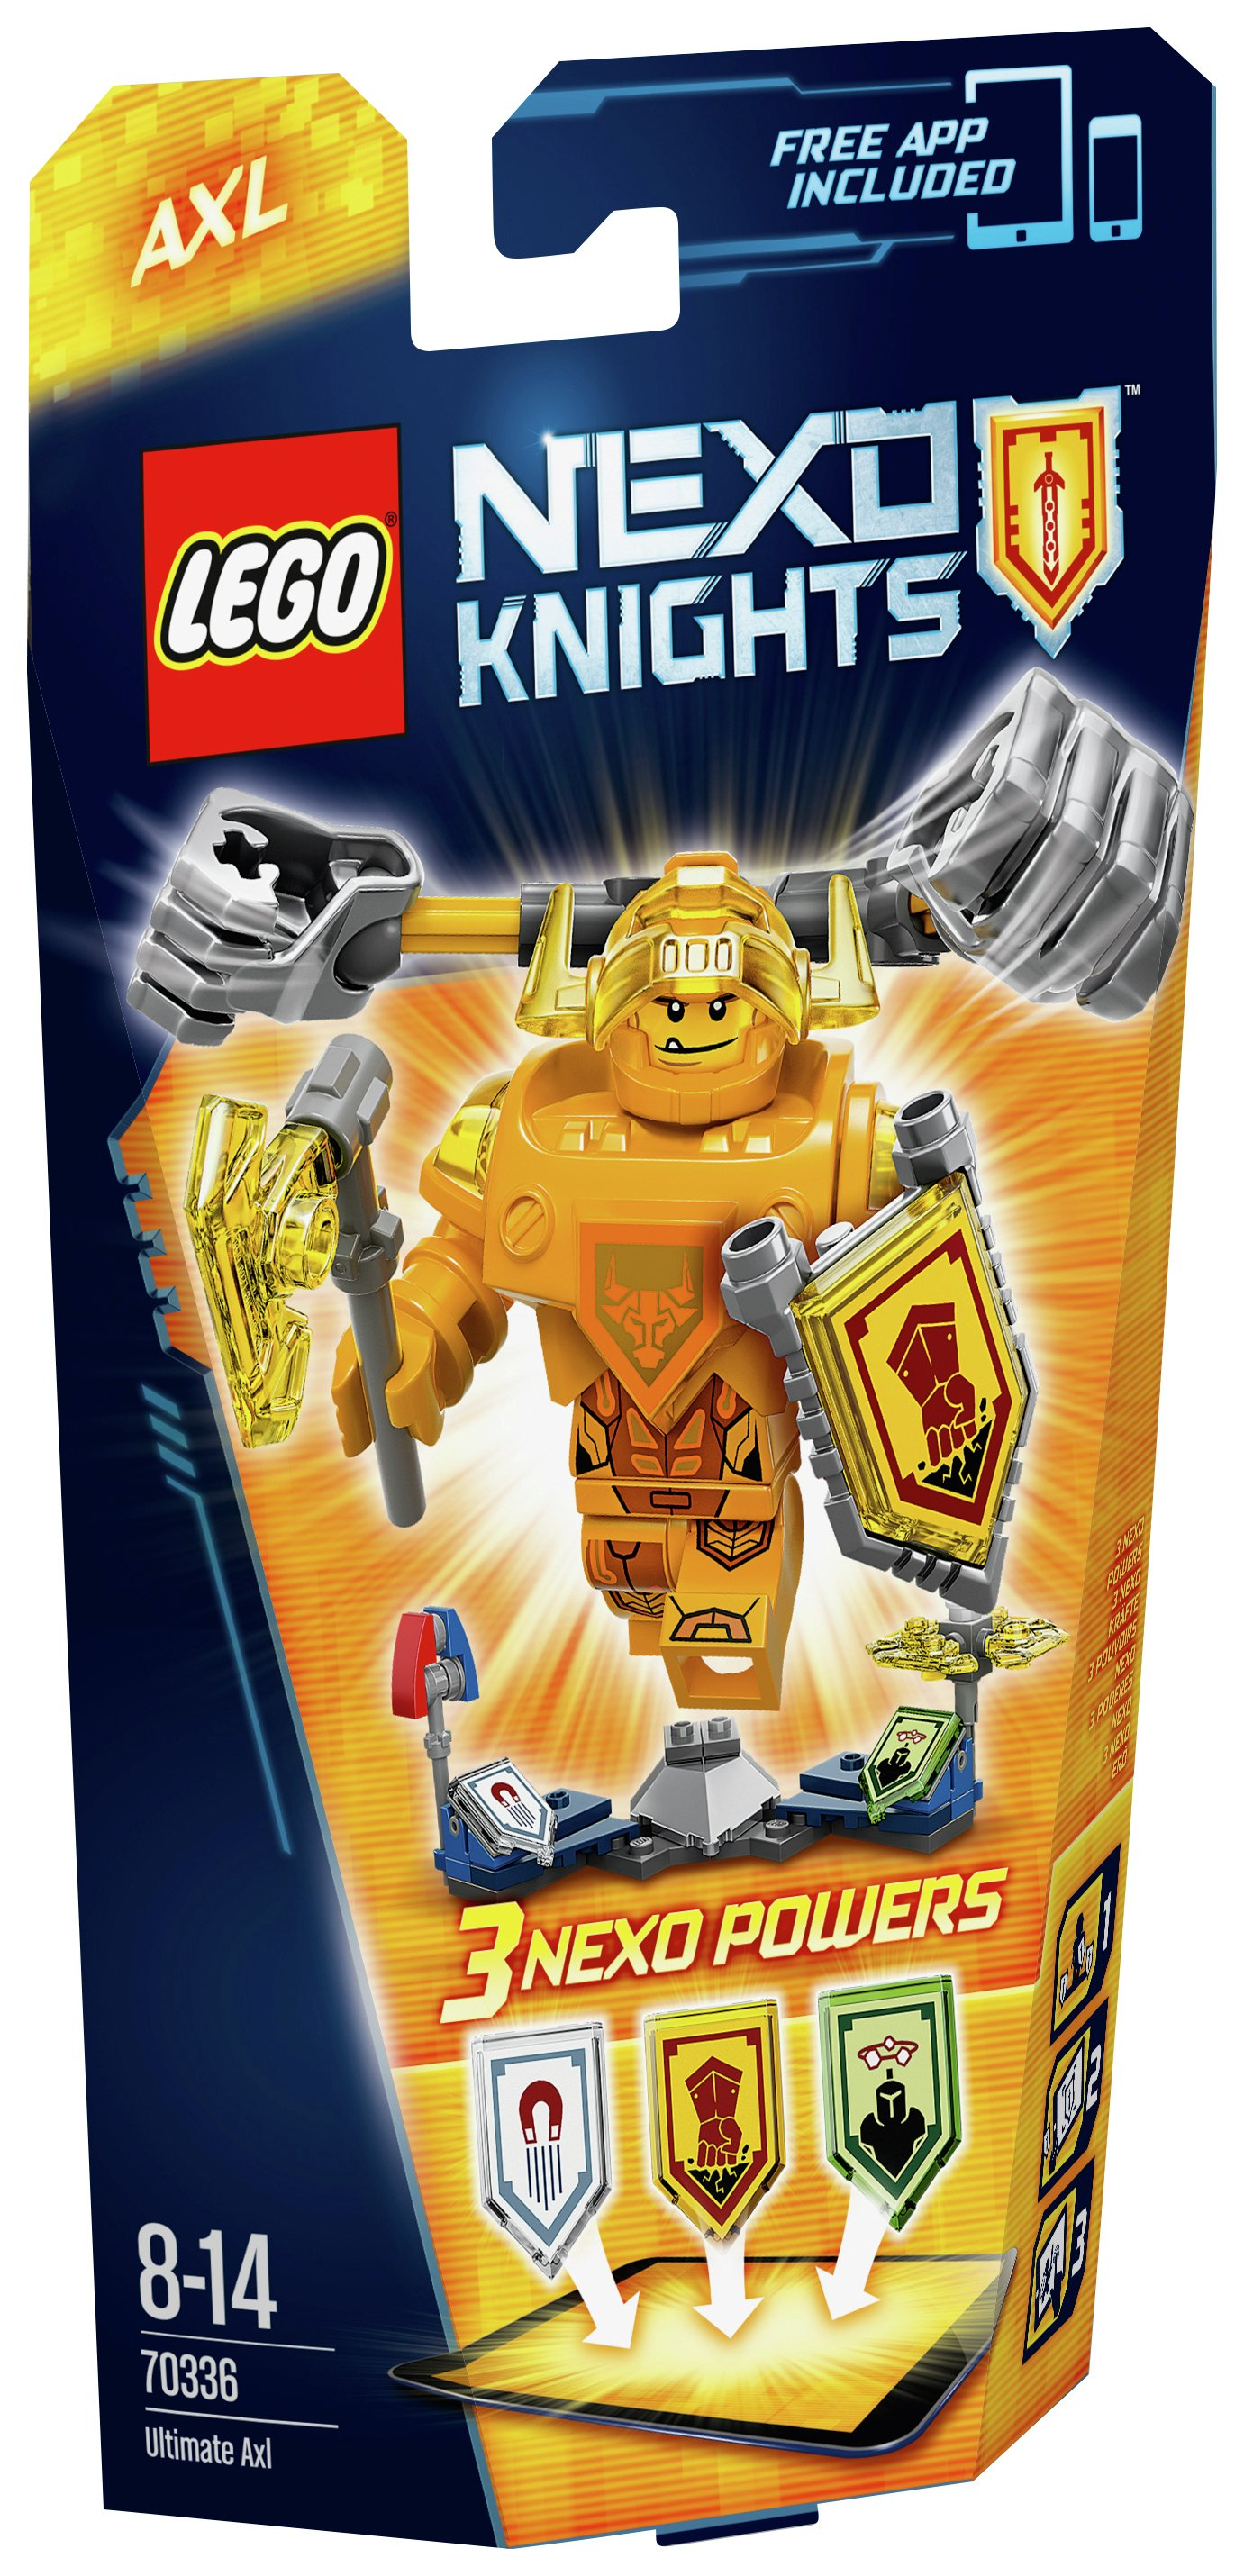 Image of LEGO - Nexo Knights Ultimate Axl - 70336